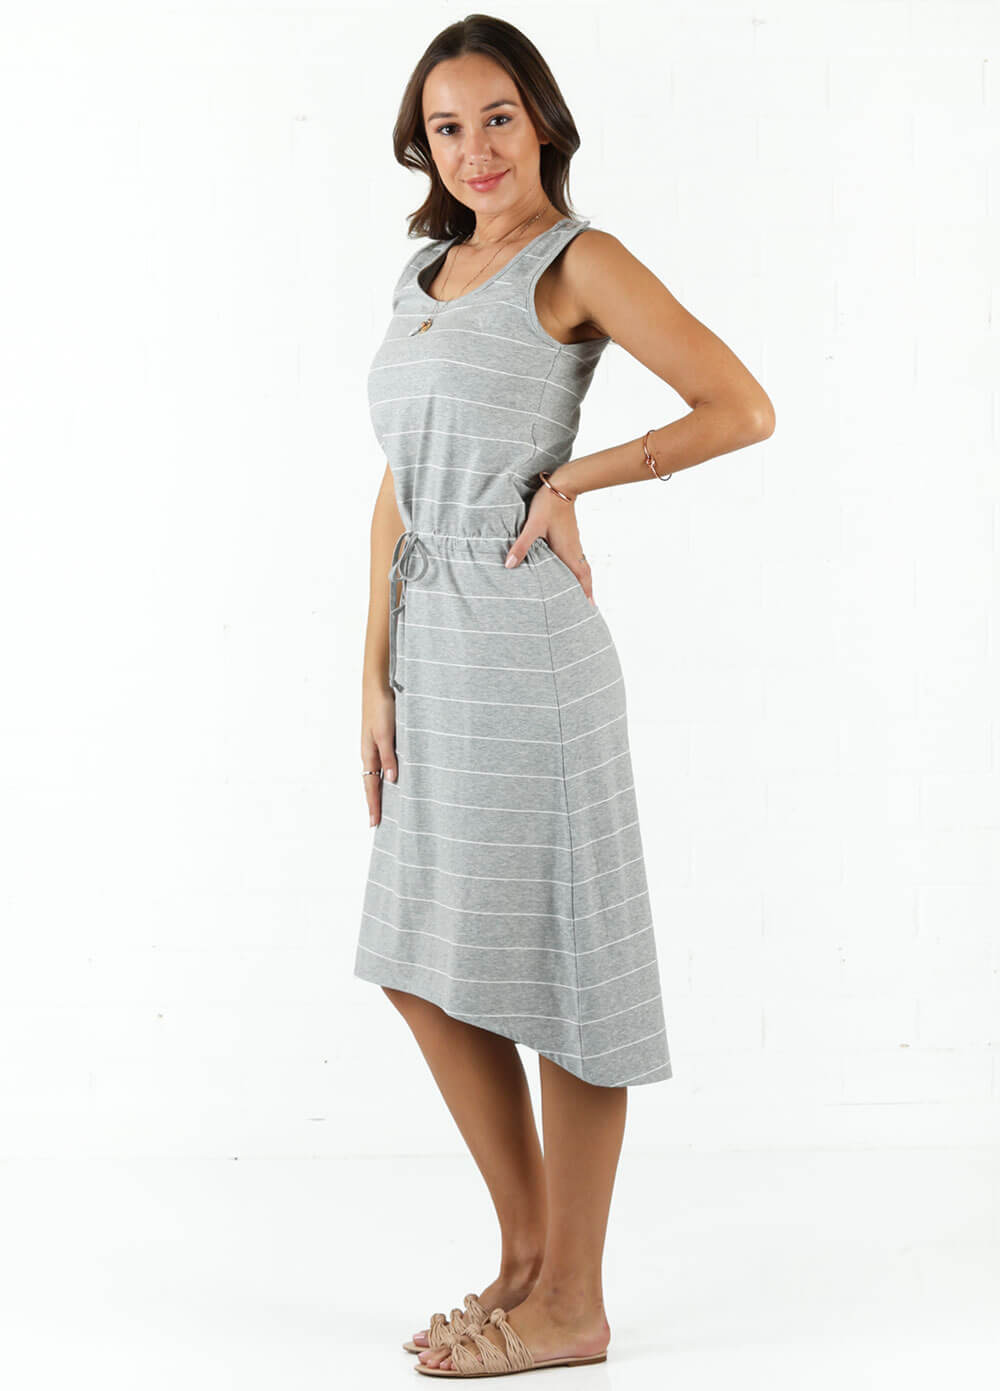 Cooper Postpartum Drawstring Feeding Dress by Trimester